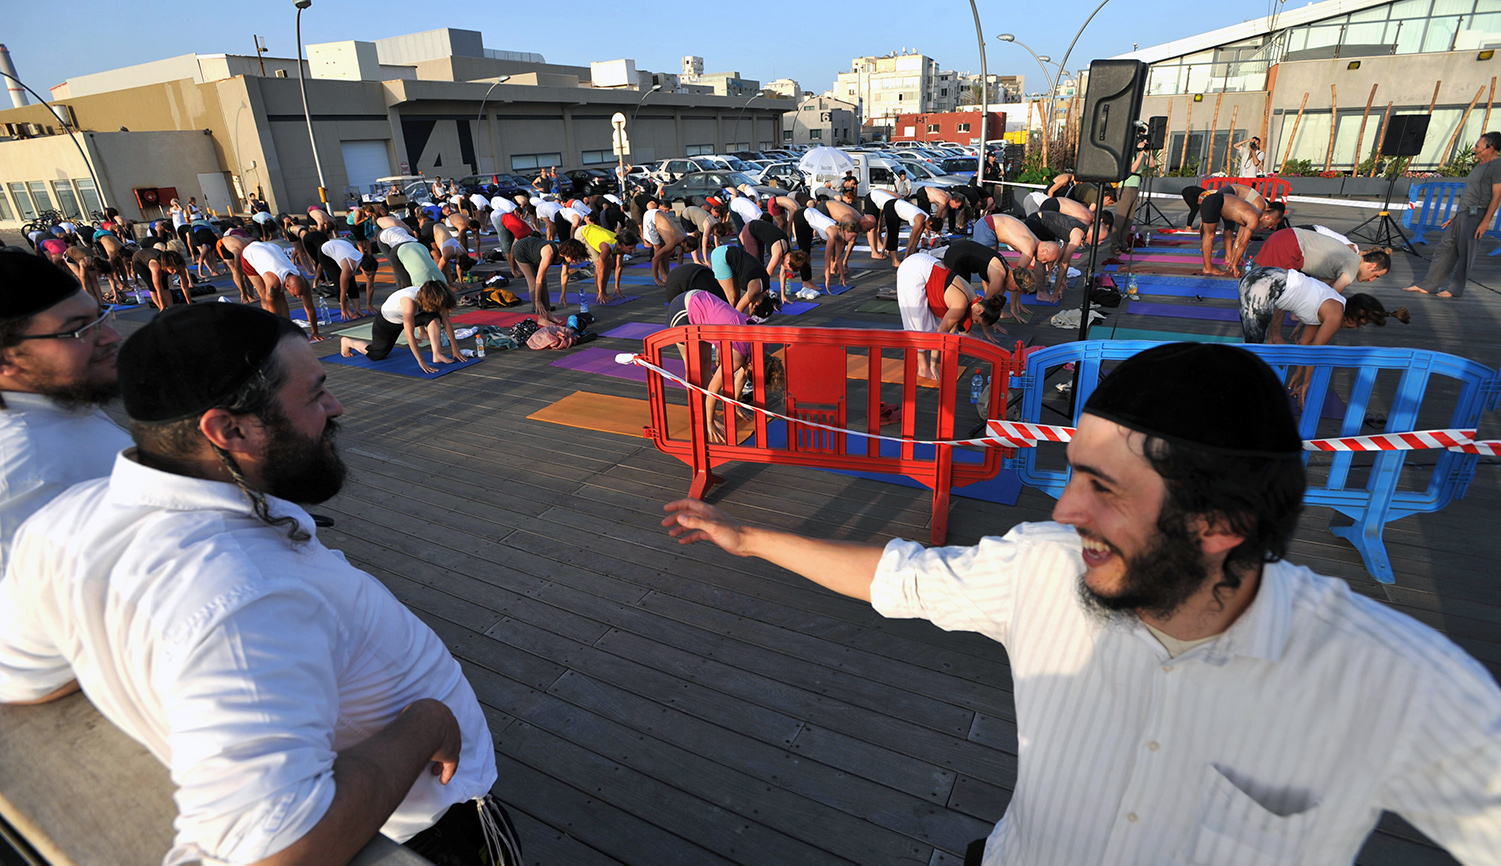 Orthodox Israeli Jewish men watch as other Israelis gather in Tel Aviv for a mass outdoor yoga session to mark the longest day of the year on June 21, 2010. YEHUDA RAIZNER/AFP via Getty Images.